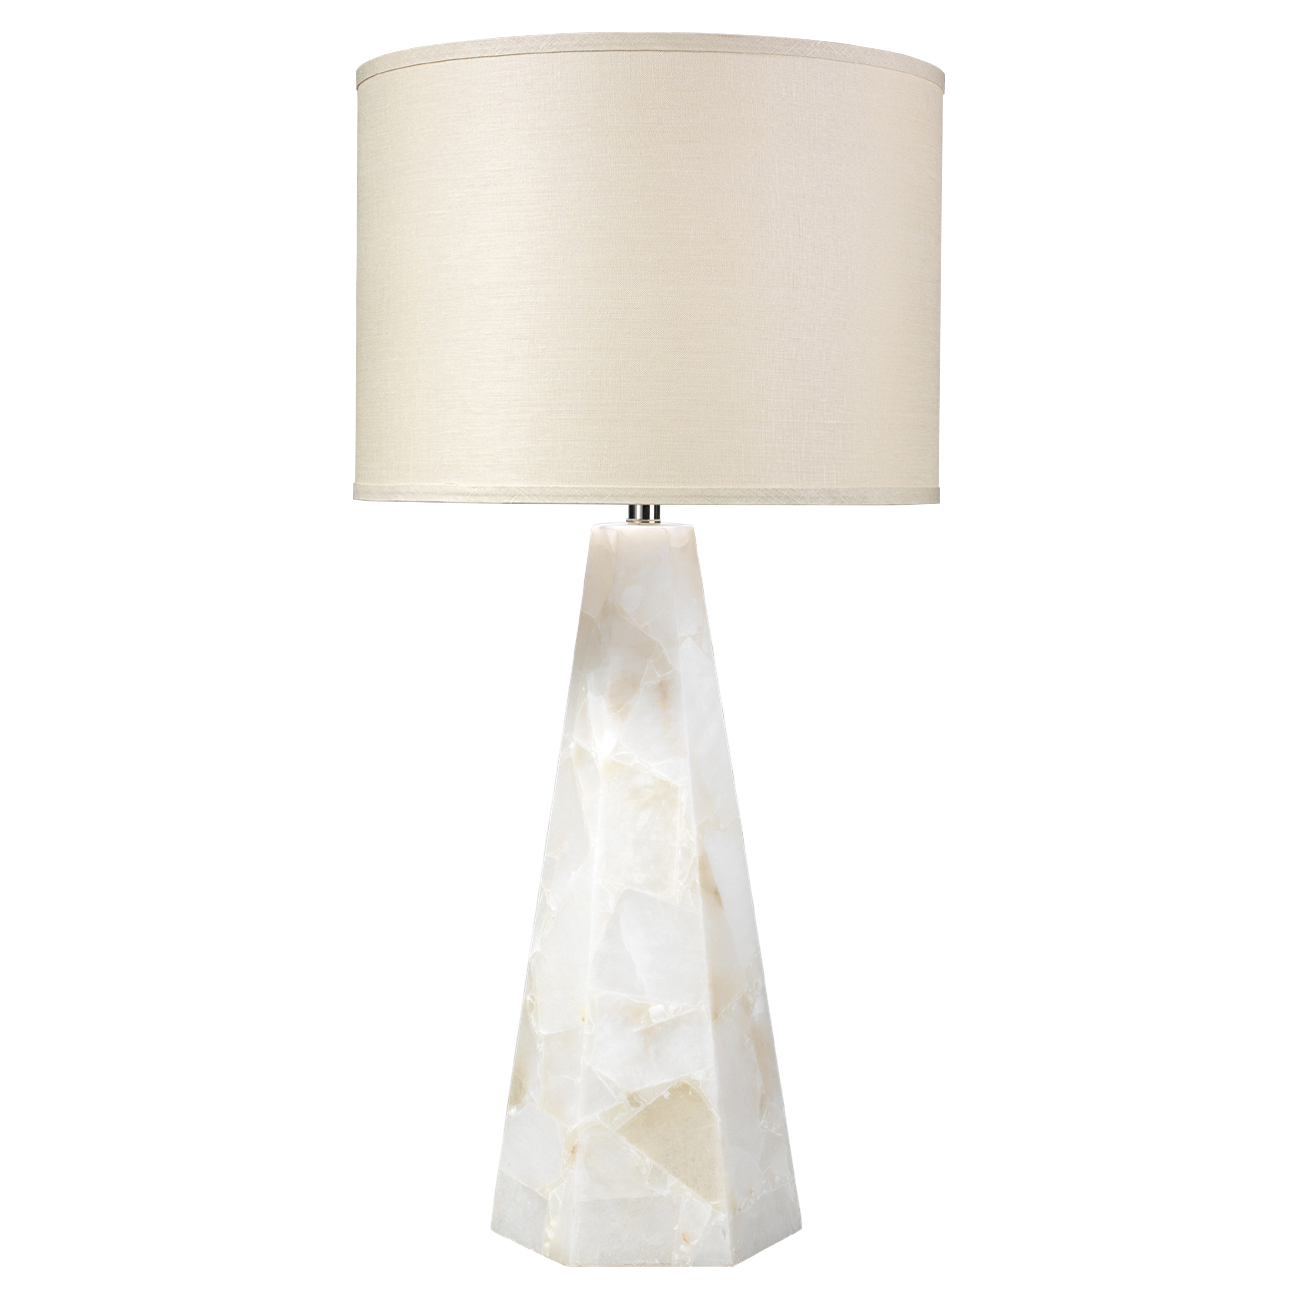 Table lamps kathy kuo home lena modern classic white alabaster beige linen shade table lamp aloadofball Images